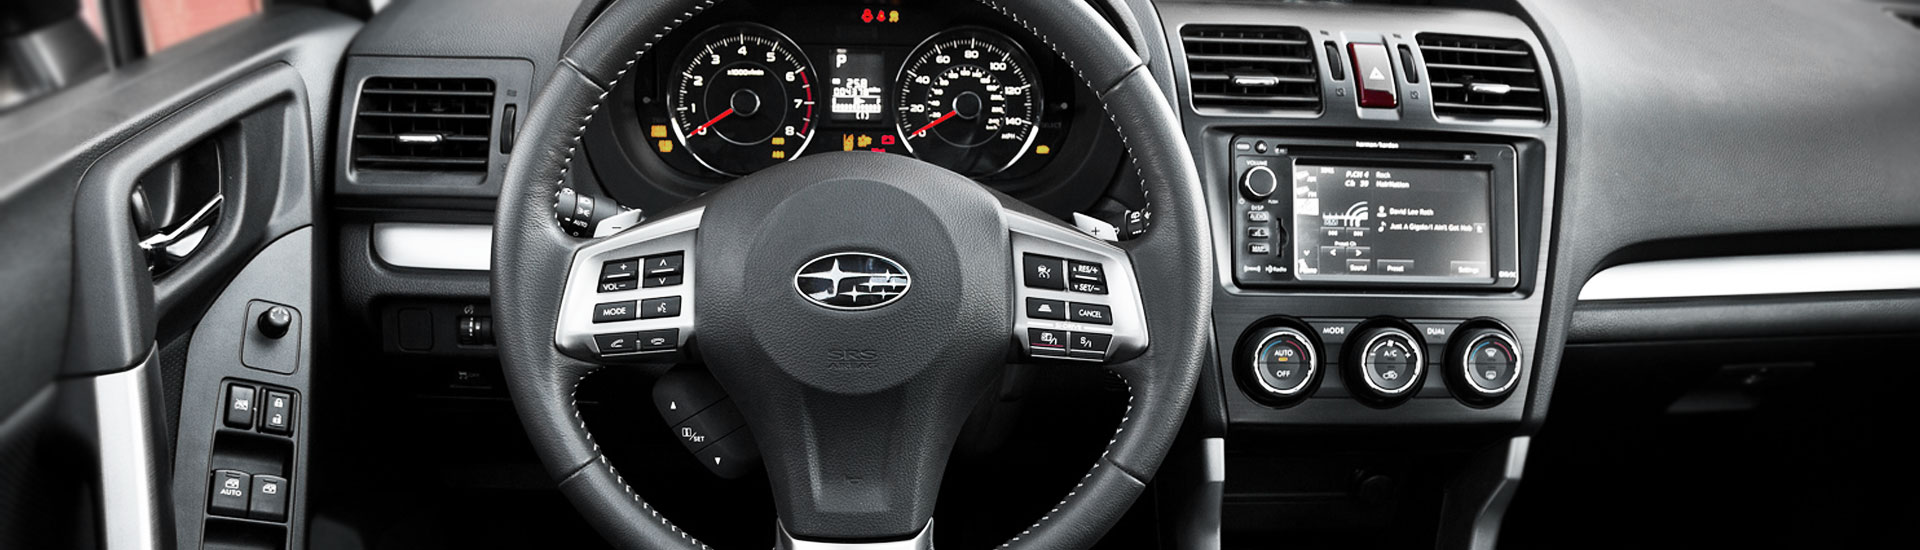 Subaru XT Custom Dash Kits